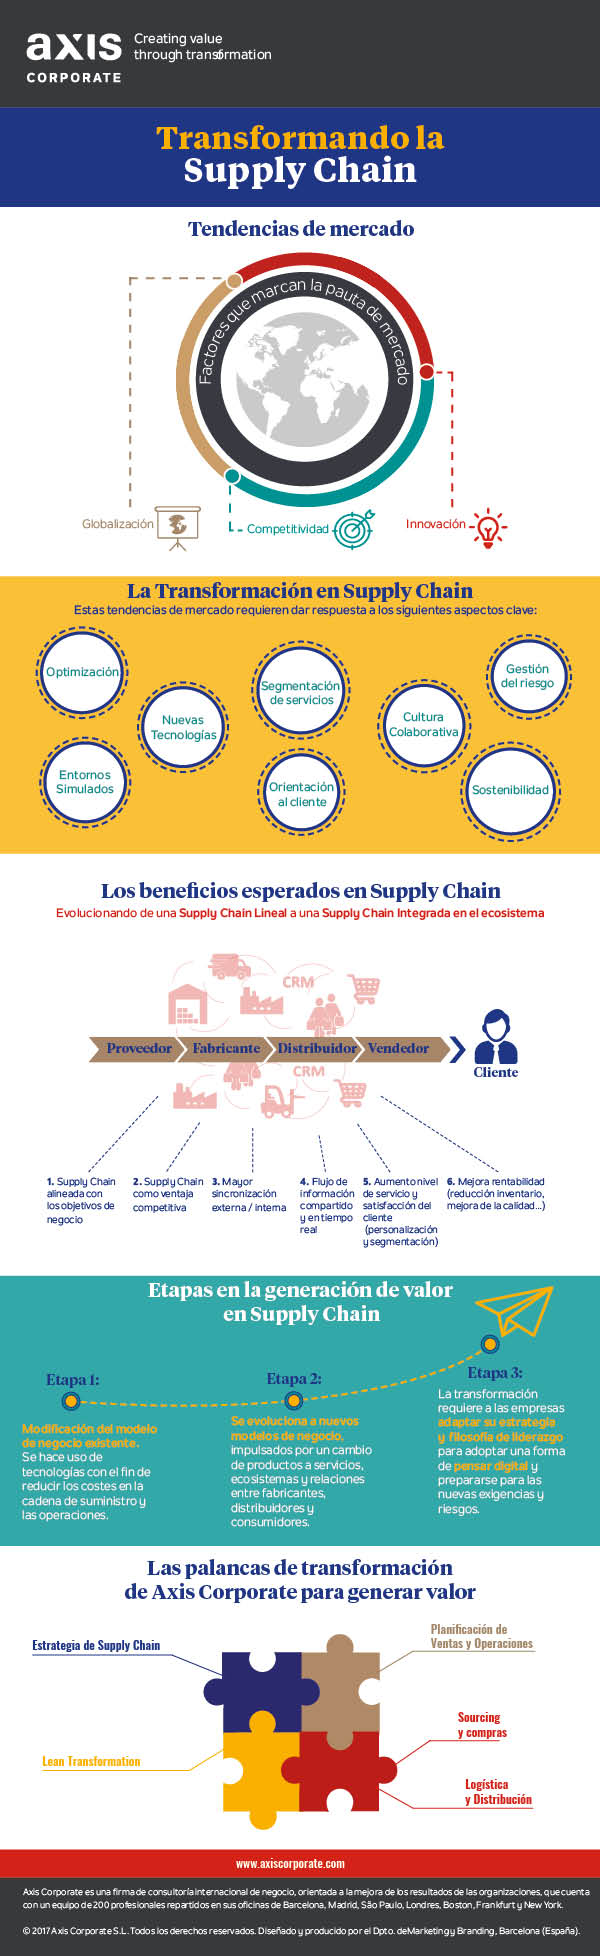 Transformando la Supply Chain